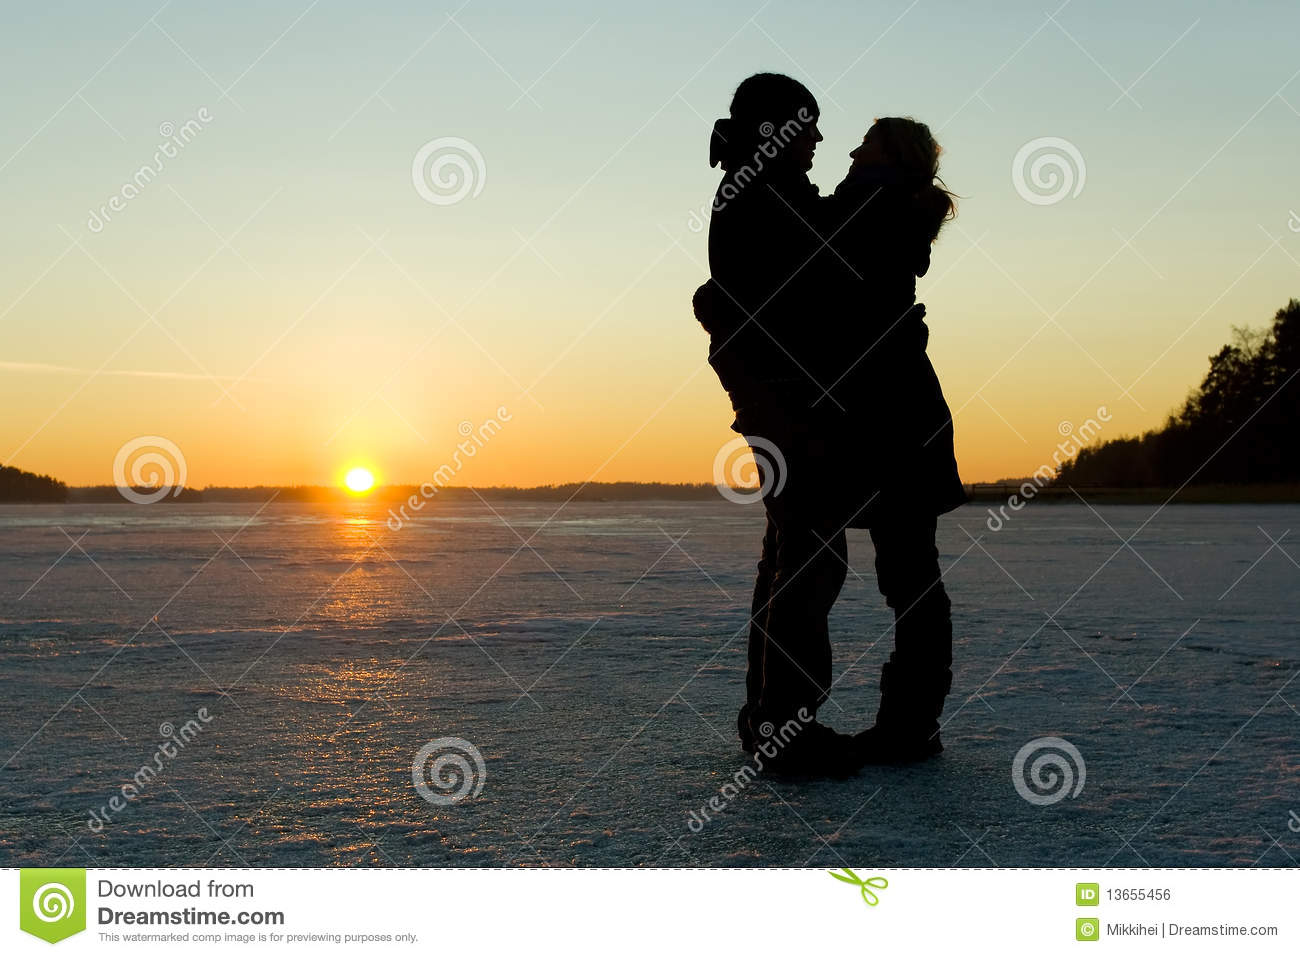 Royalty Free Stock Image  Silhouette of a couple hugging on iceCouple Silhouette Hugging